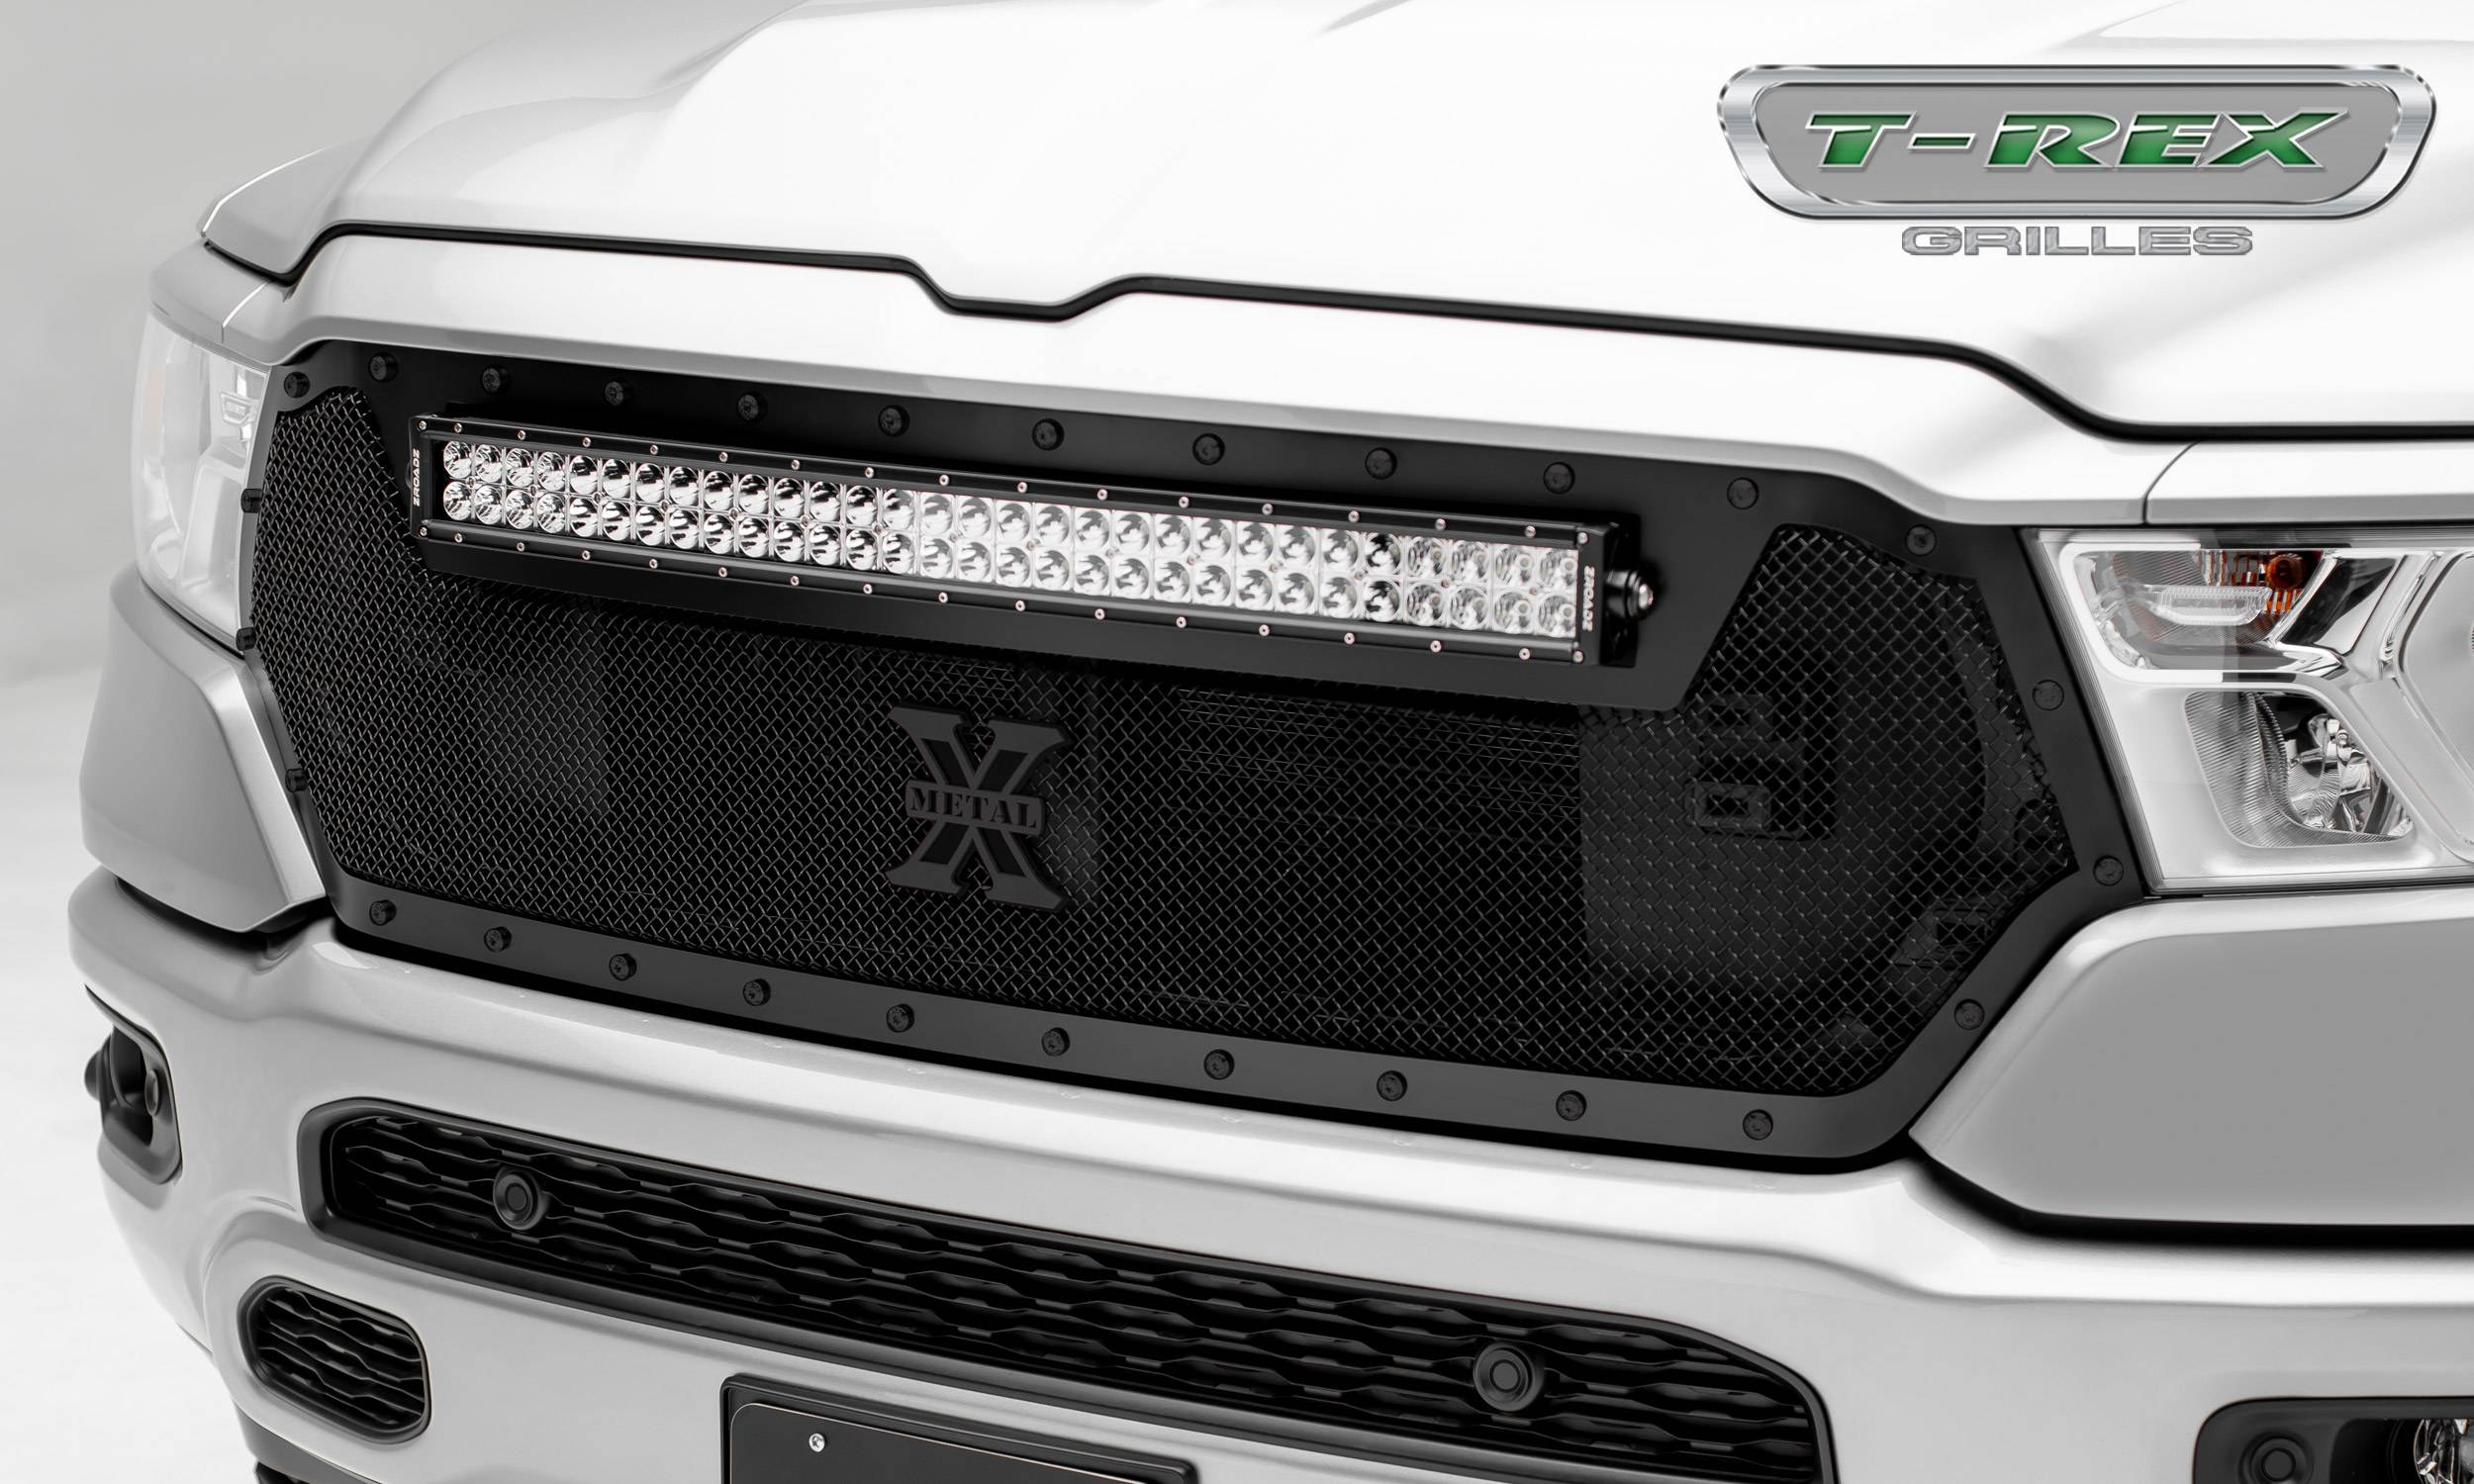 T-REX Grilles - RAM 1500 - Stealth Torch Series - Main Grille Replacement w/ (1) 30 inch LED Light Bar - Formed Mesh & Black Studs - Black Powder Coat Finish - Pt # 6314651-BR